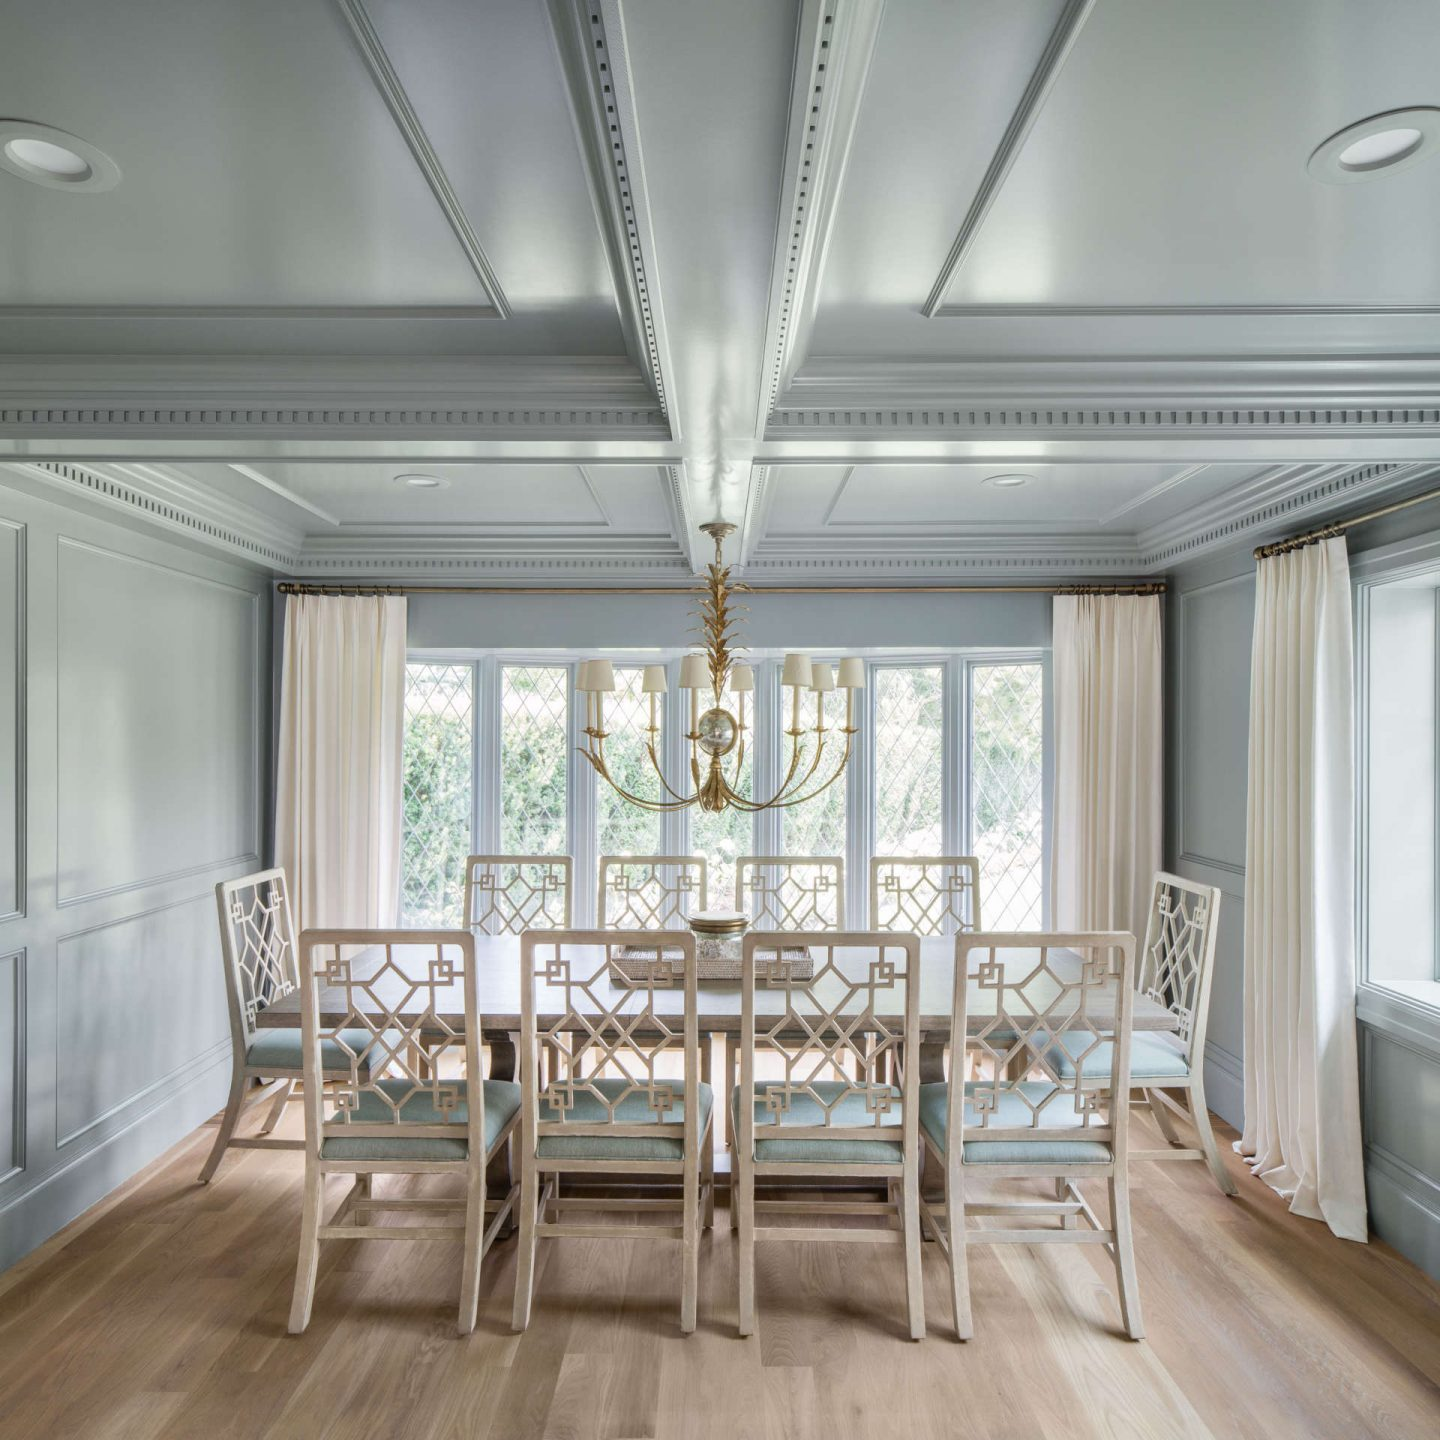 Magnificent paneling on walls and ceiling of a dining room by the Fox Group in a renovated Tudor home. Come explore these timeless design ideas...hello lovely indeed. #diningroom #thefoxgroup #millwork #traditional